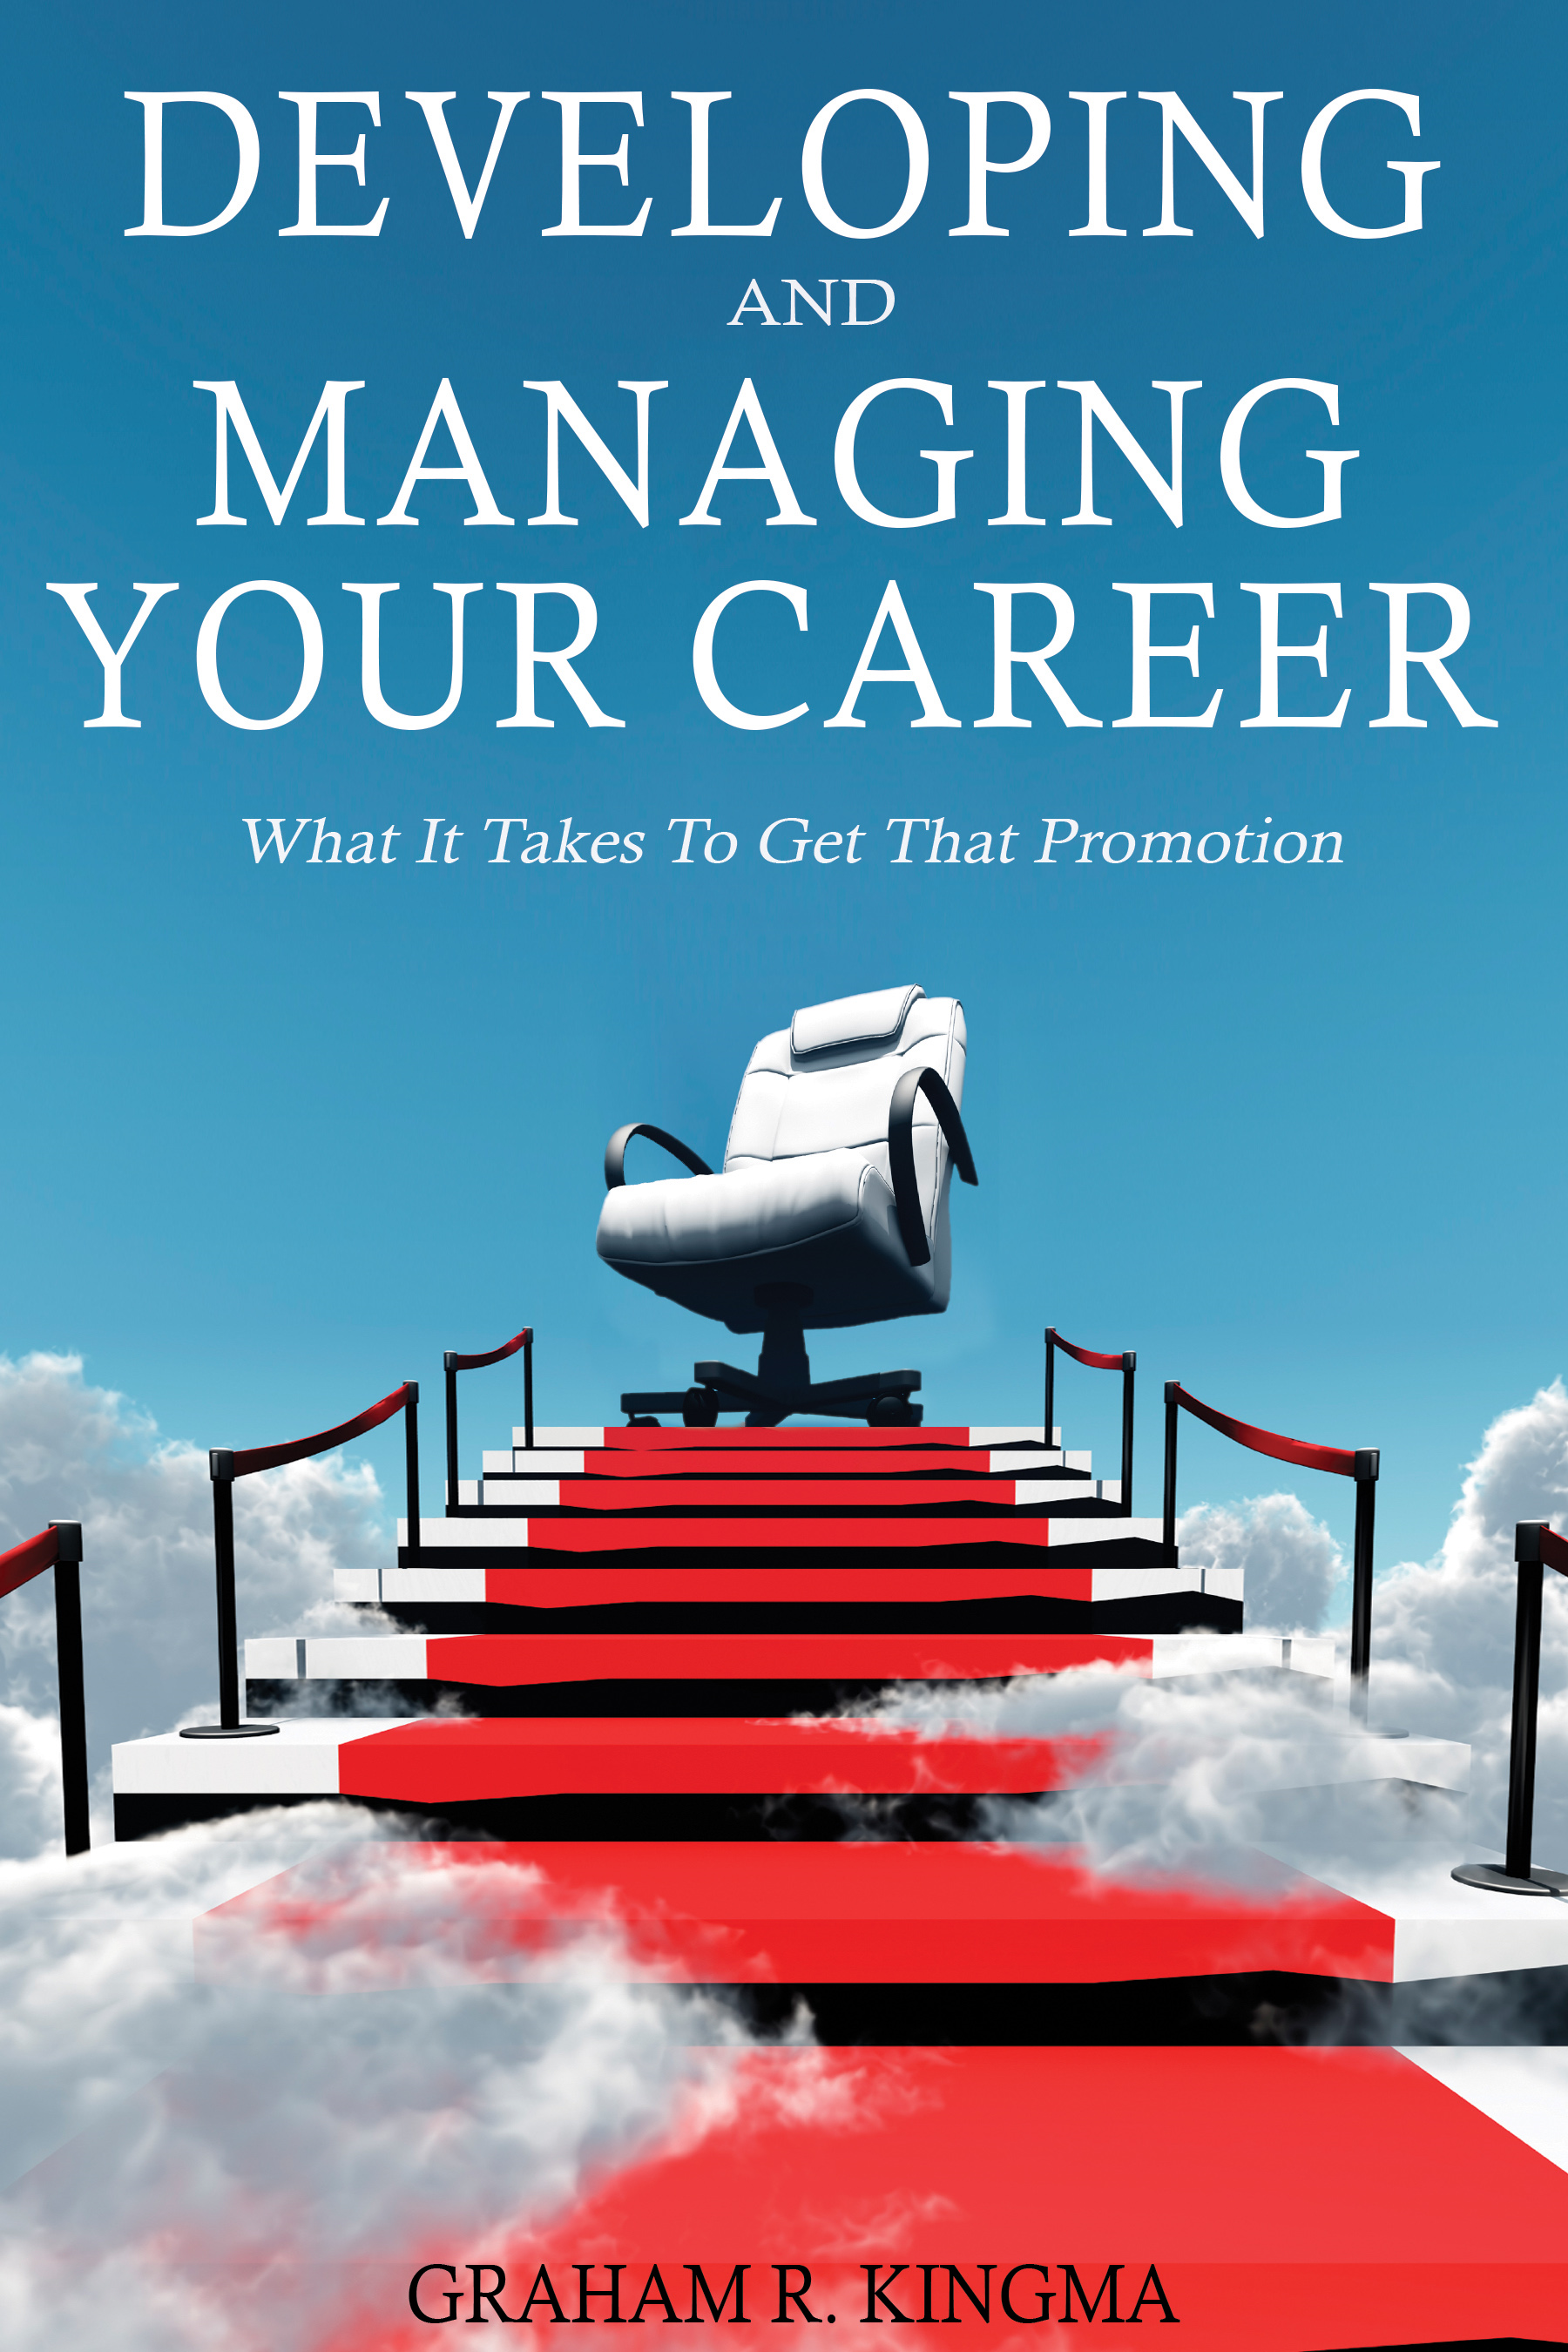 Developing and Managing Your Career